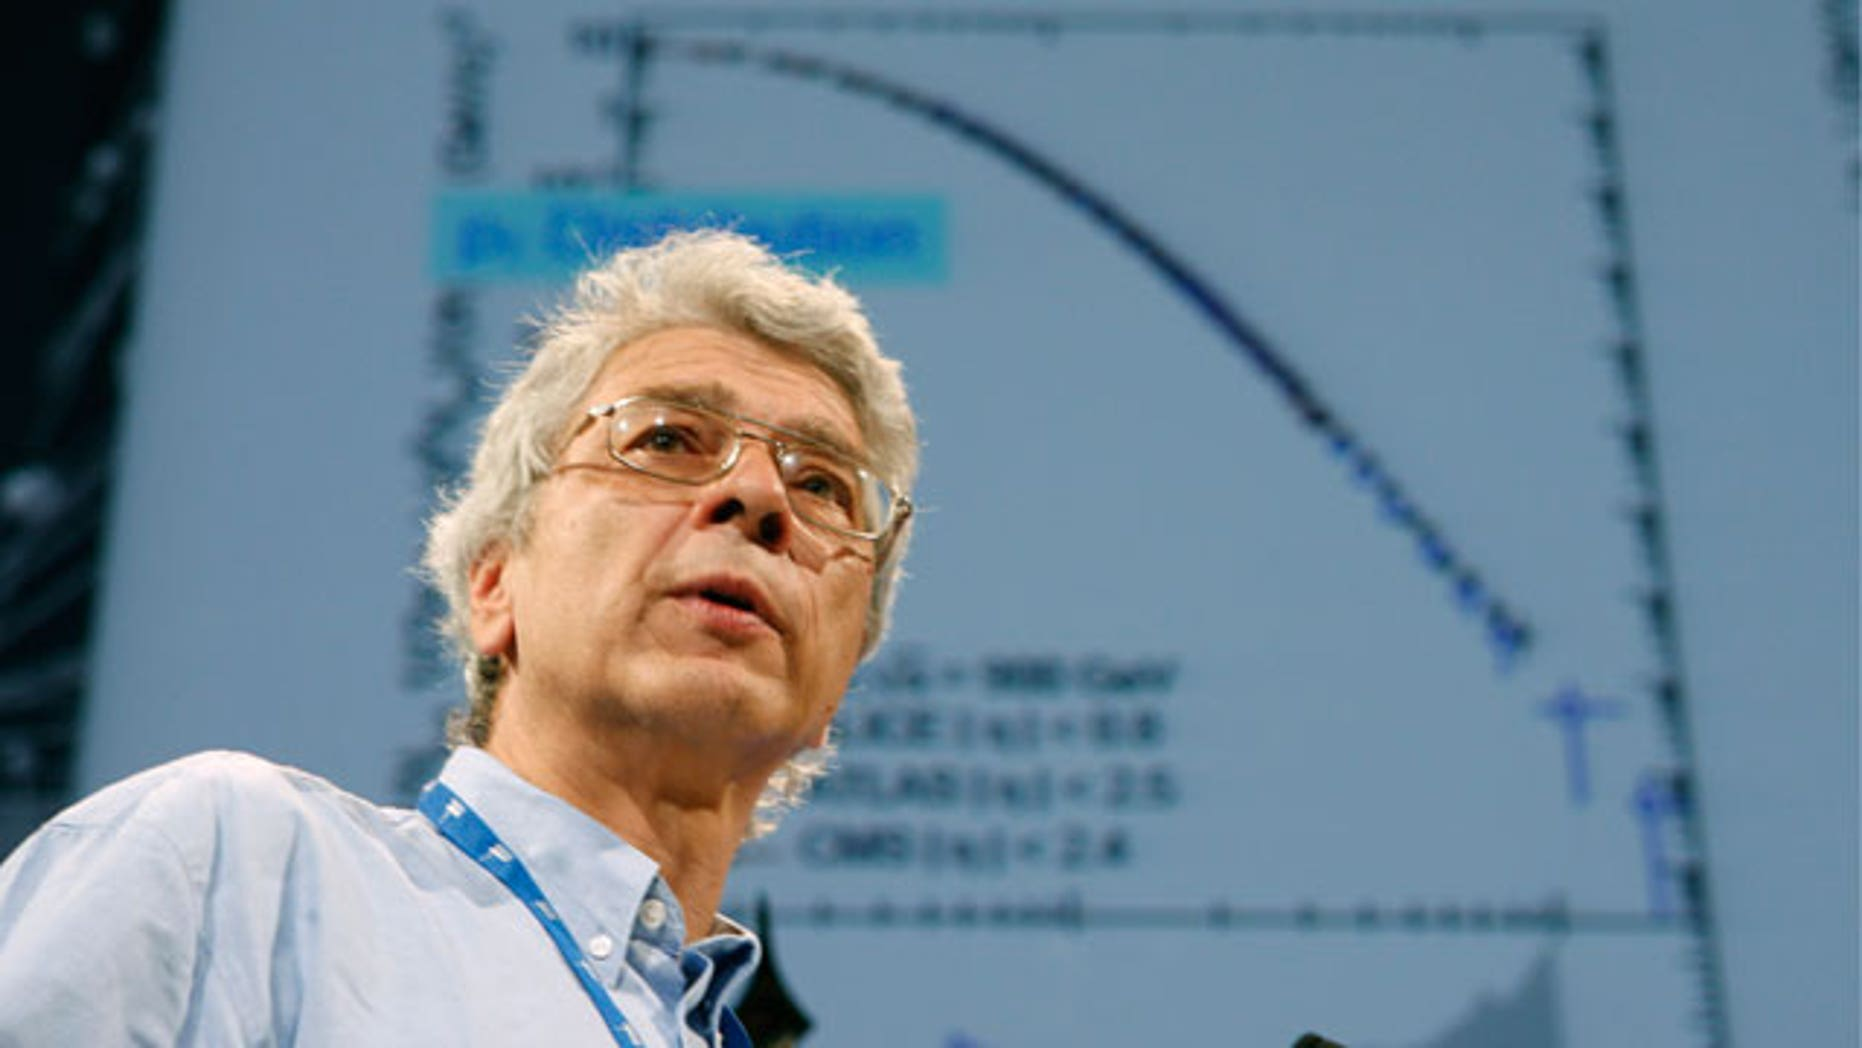 July 26: Dr. Juerg Schuknecht speaks to an audience of scientists during the 35th International Conference on High Energy Physics on the Alice experiment in Paris. International physicists announce today, some results from CERN, the European particle collider which aims at uncovering the secrets of the universe, and how the universe began. (AP)